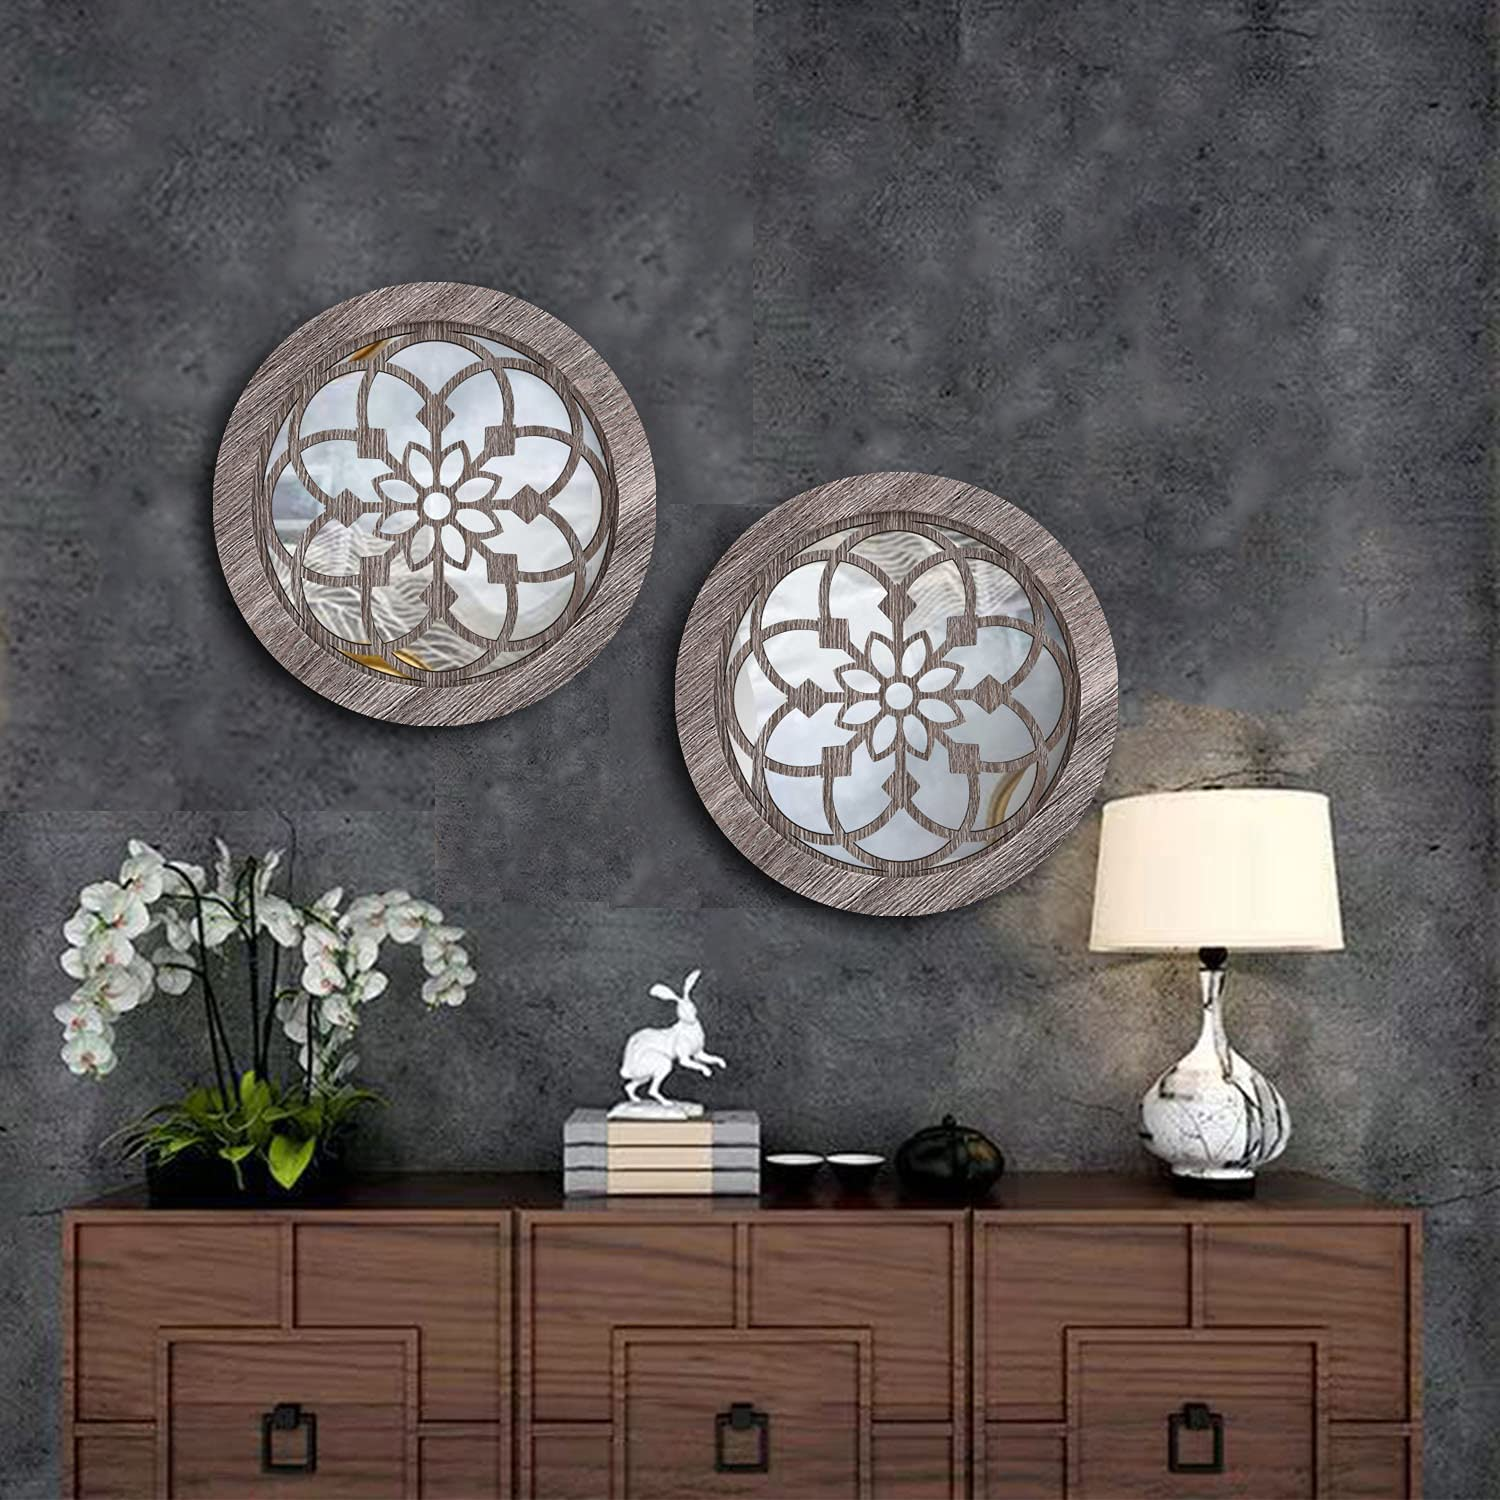 Round Rustic Decorative Wall Mirror - Living Room Farmhouse Wall Mirrors, Round Wall Mounted Mirror for Bedroom Kitchen Bathroom Entryway Home Decor Clearance, 2pcs 12 Inches Small Circle Mirror Art